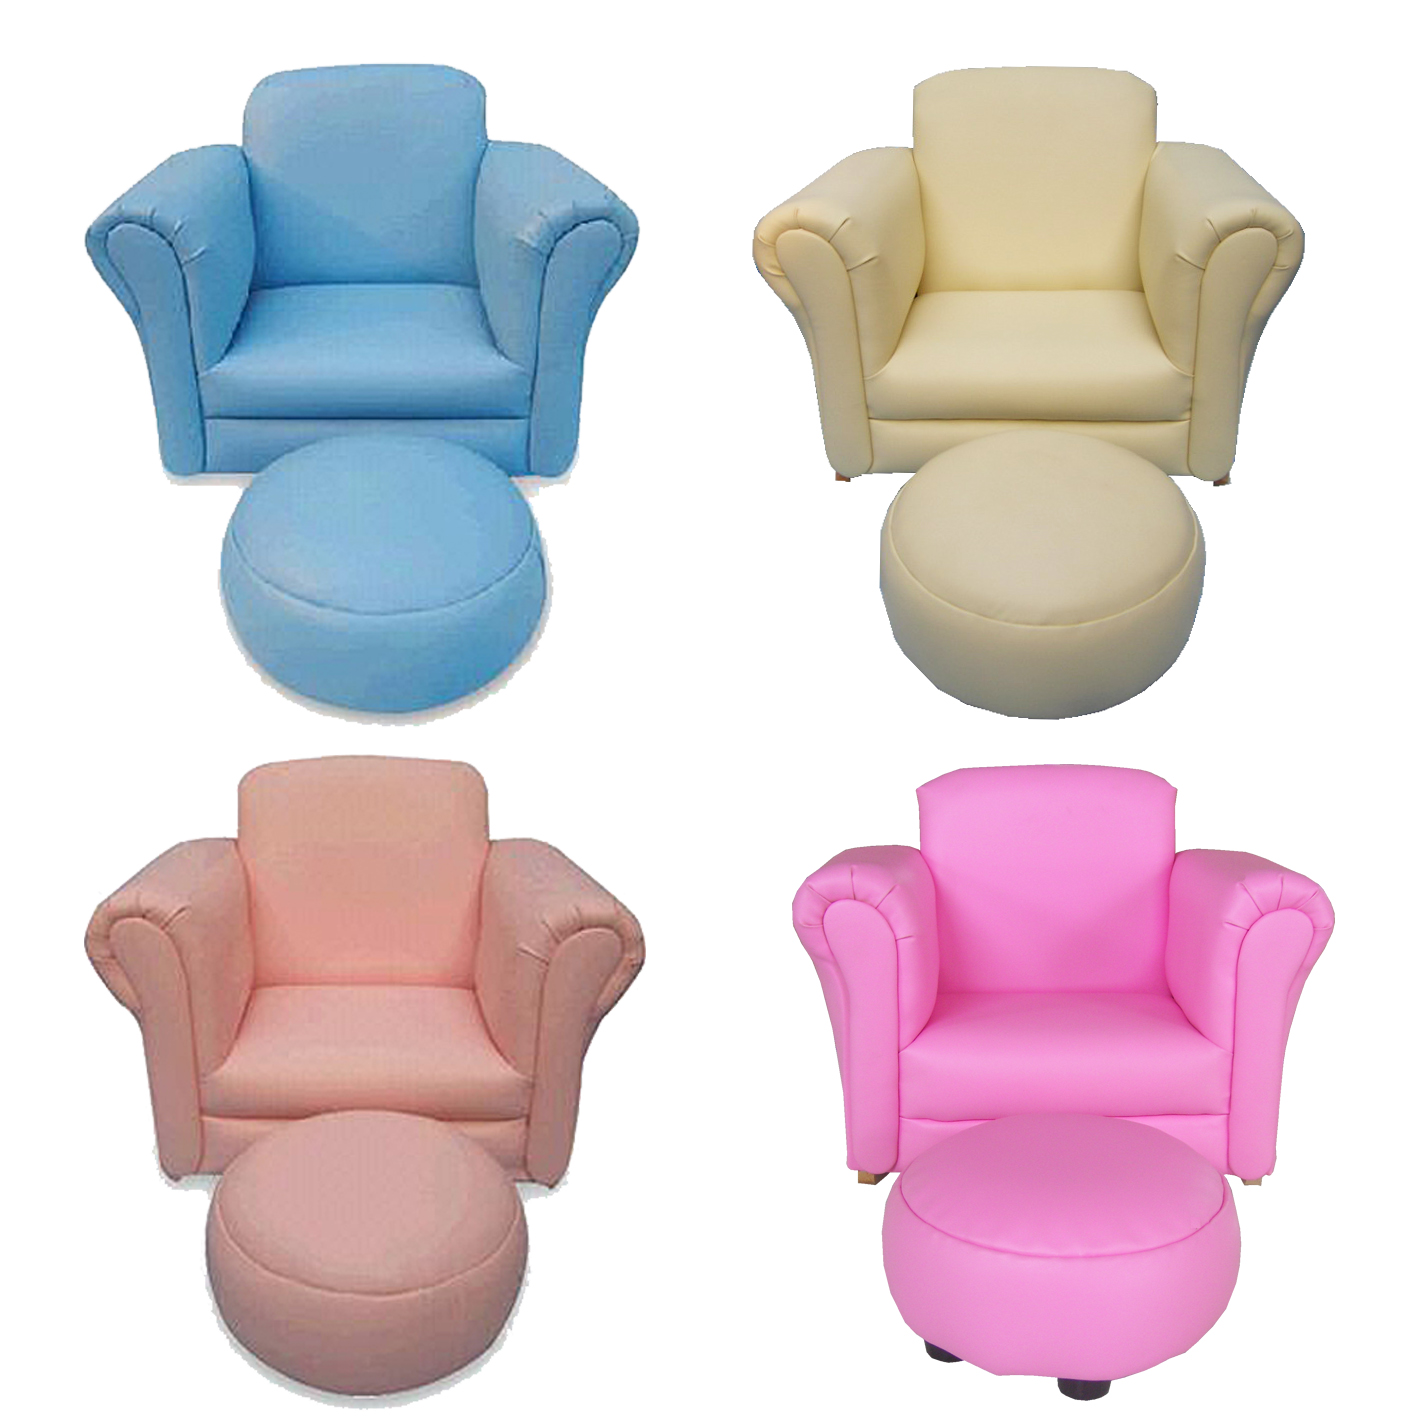 Children kids child sofa furniture armchair couch seat on for Childrens armchair and footstool